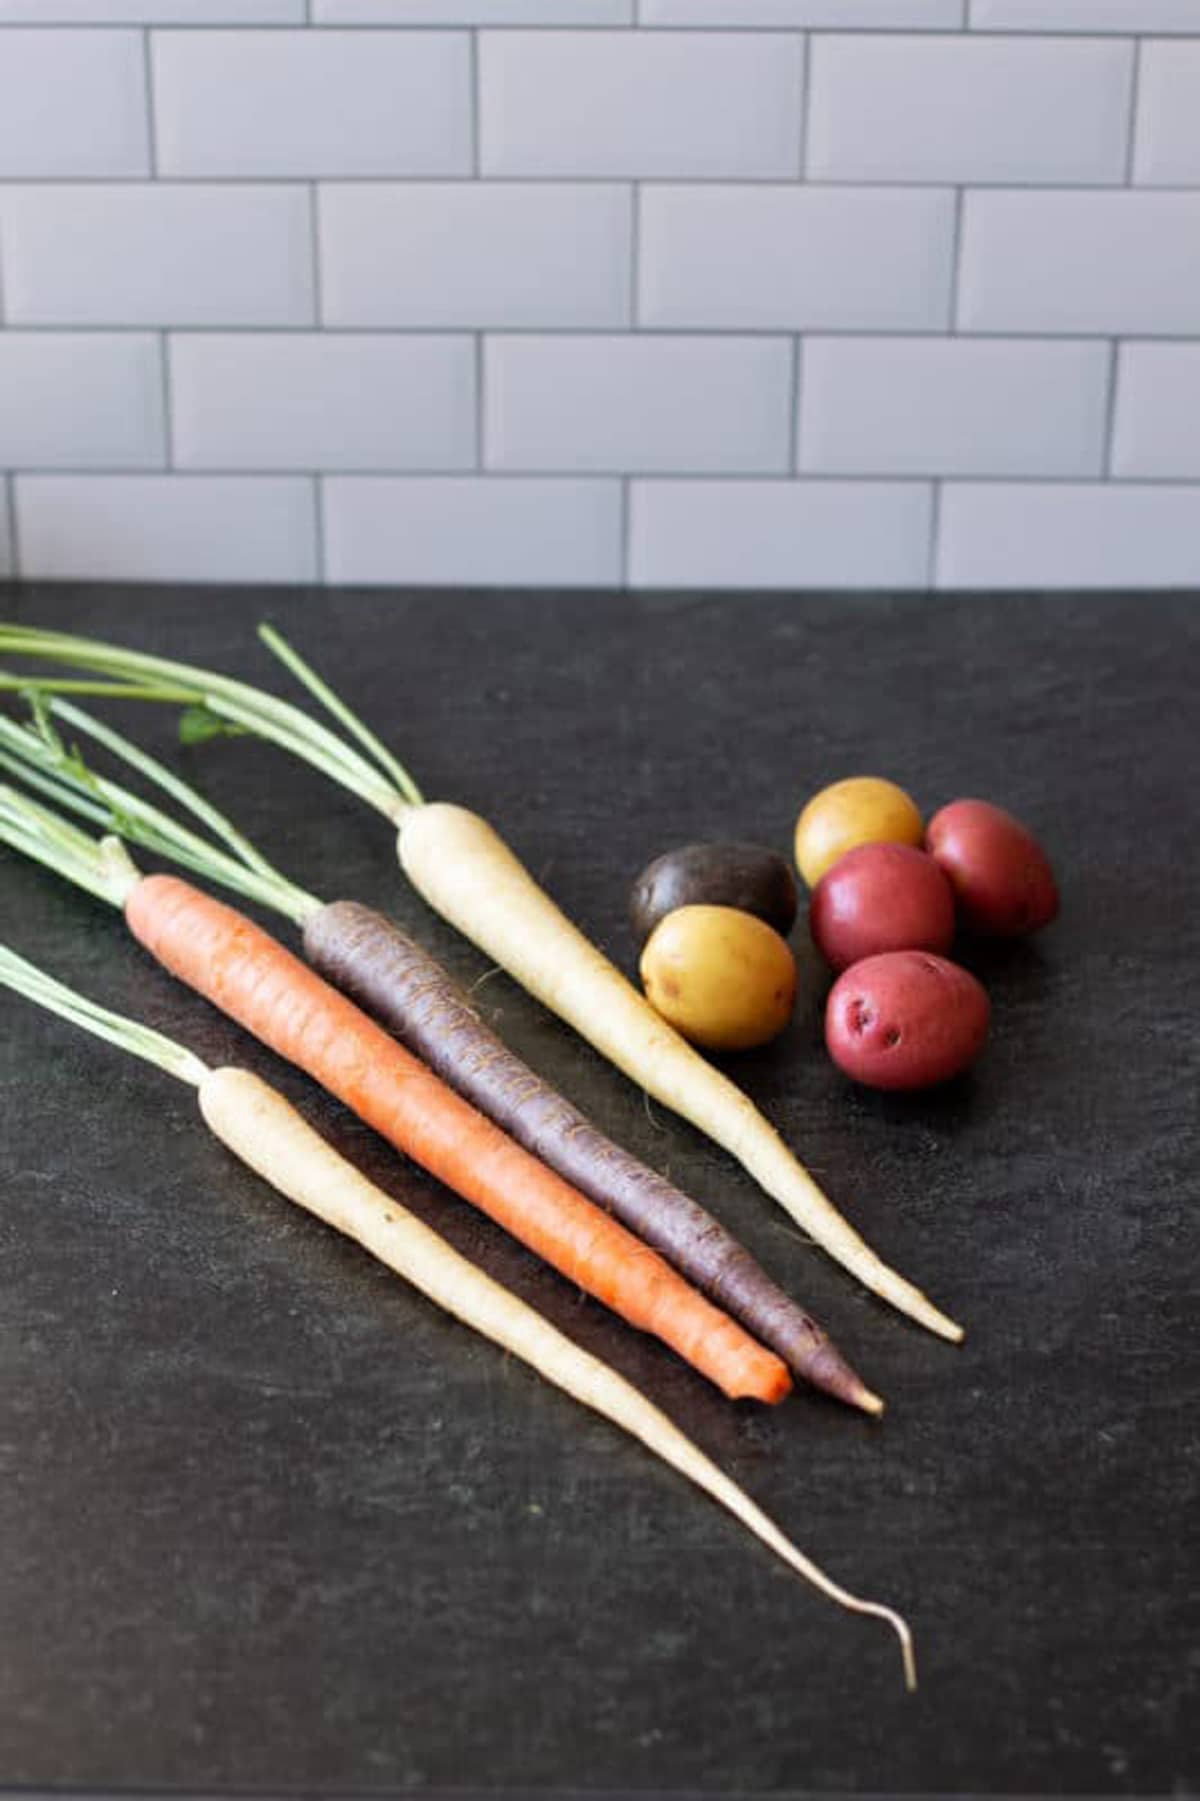 Carrots and new potatoes on black countertop.